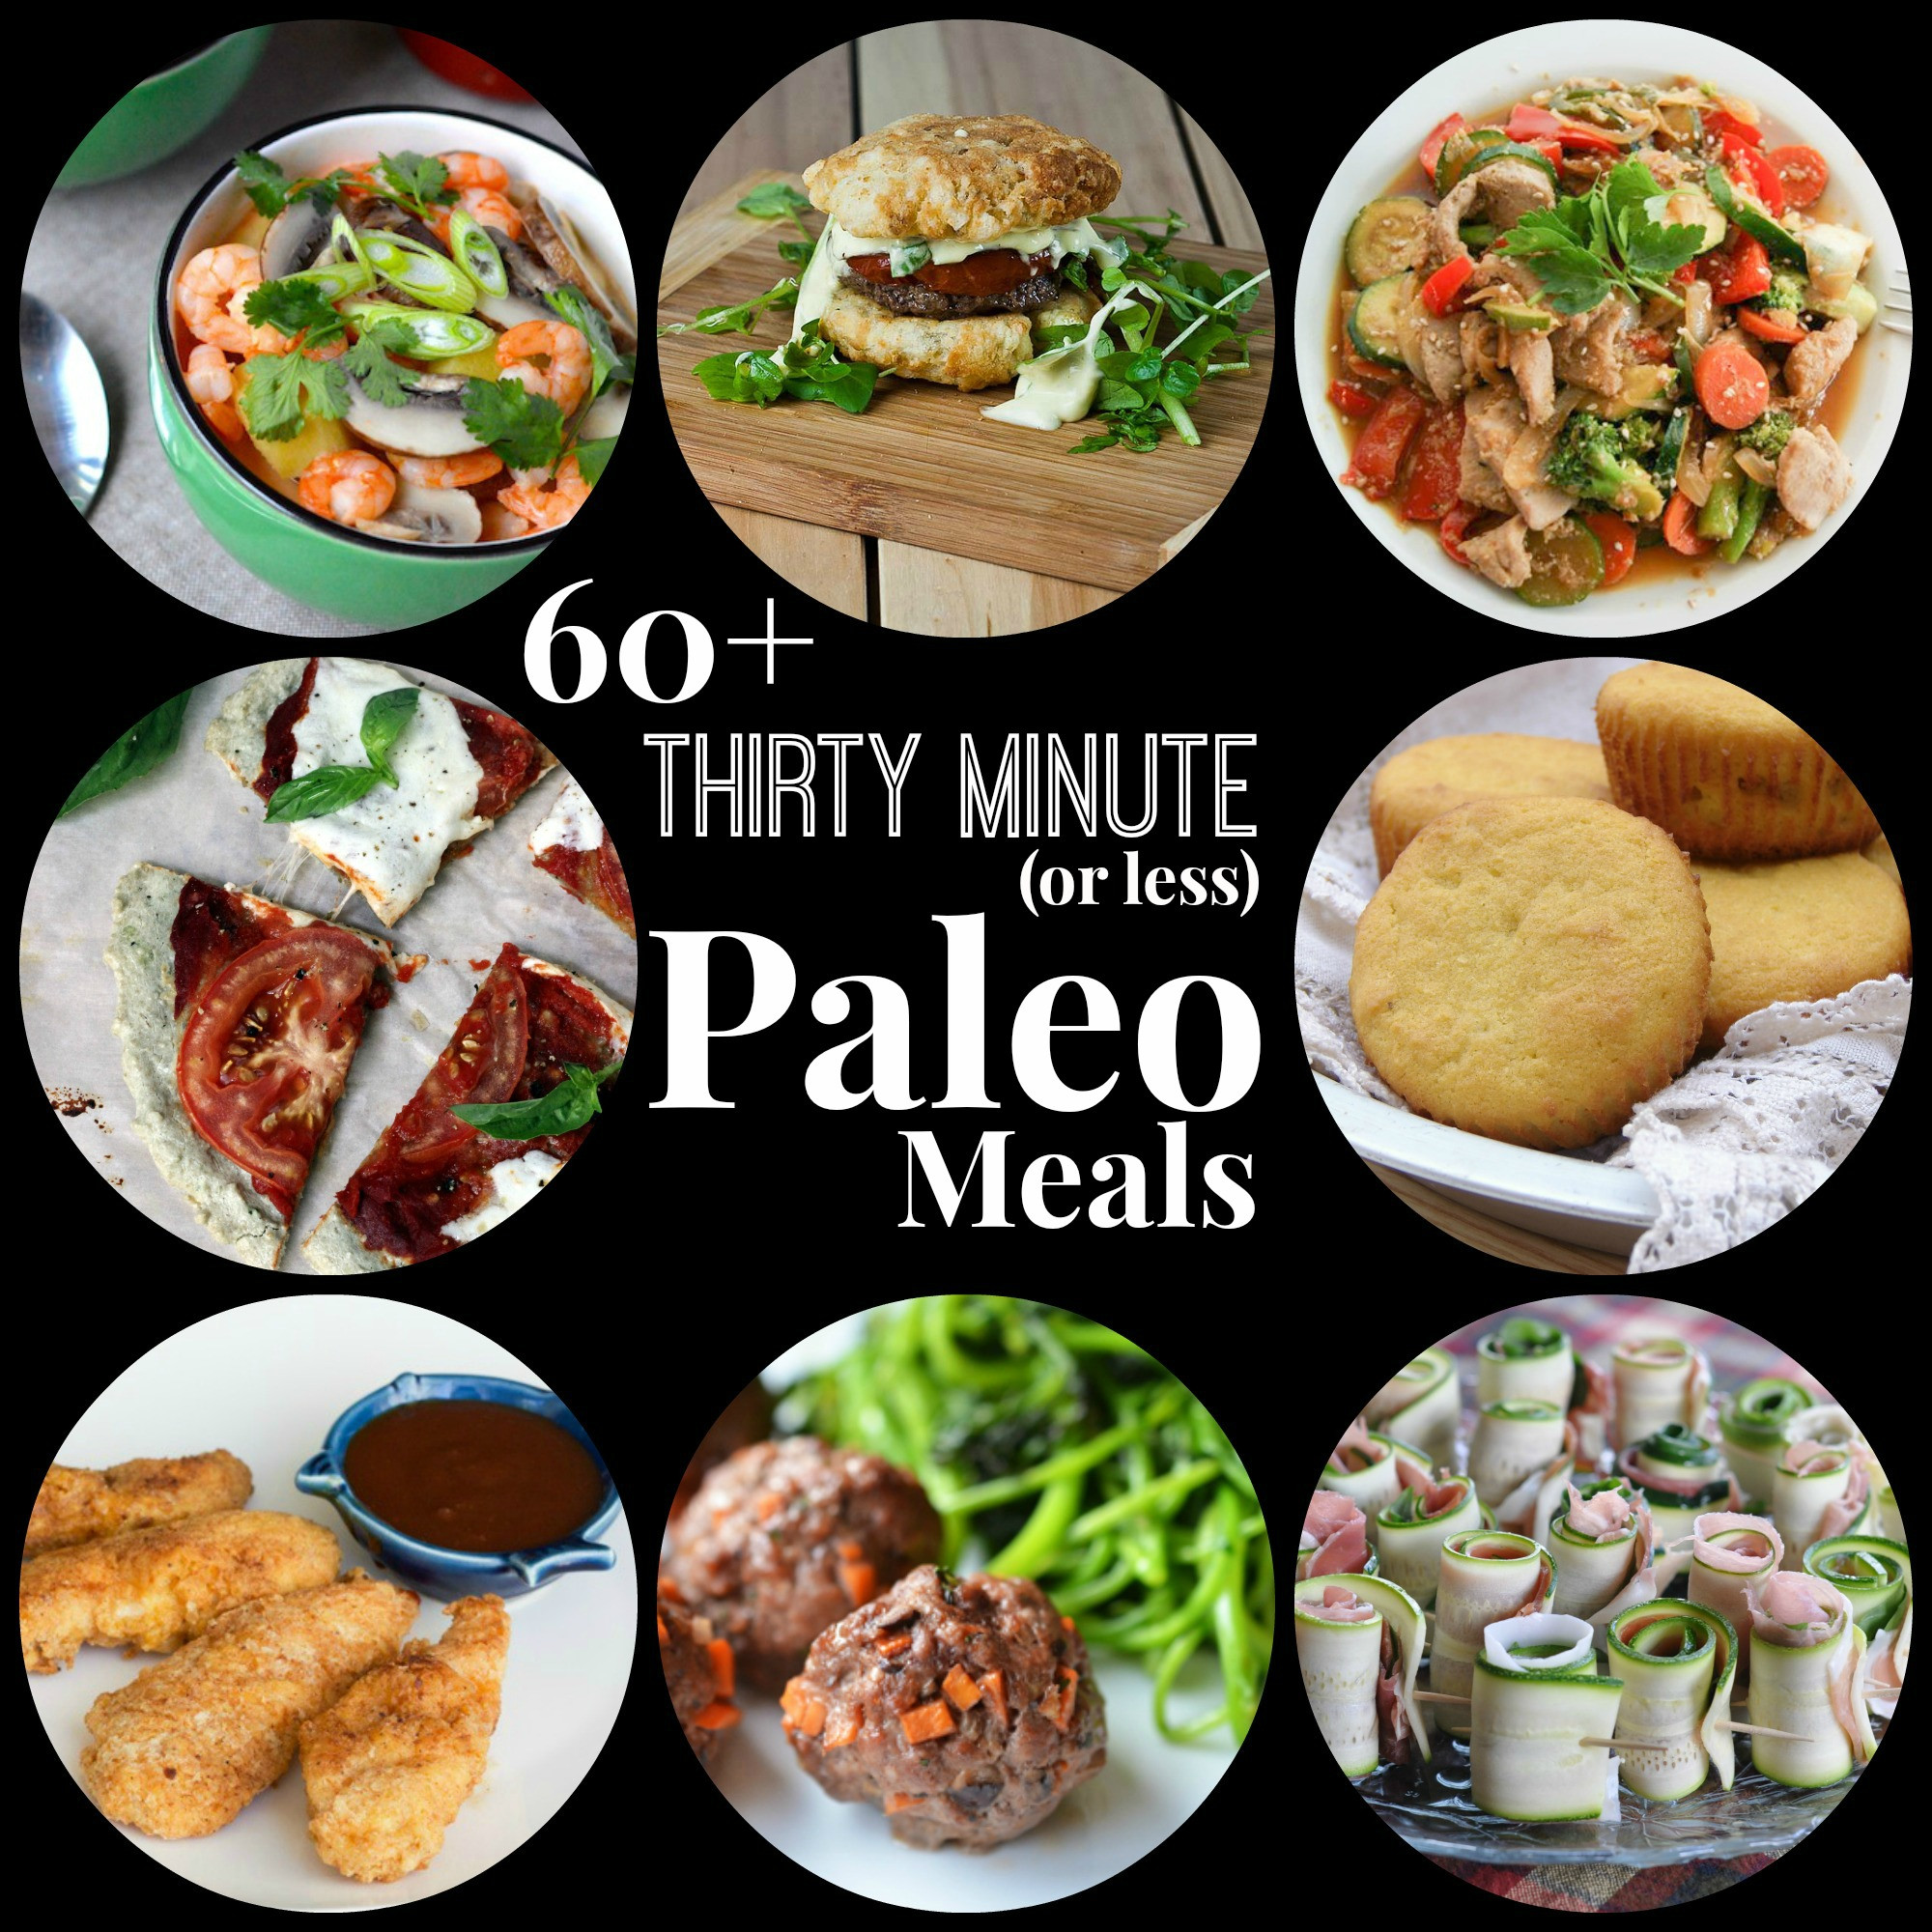 Easy Paleo Dinner  60 Thirty Minute or less Paleo Meals